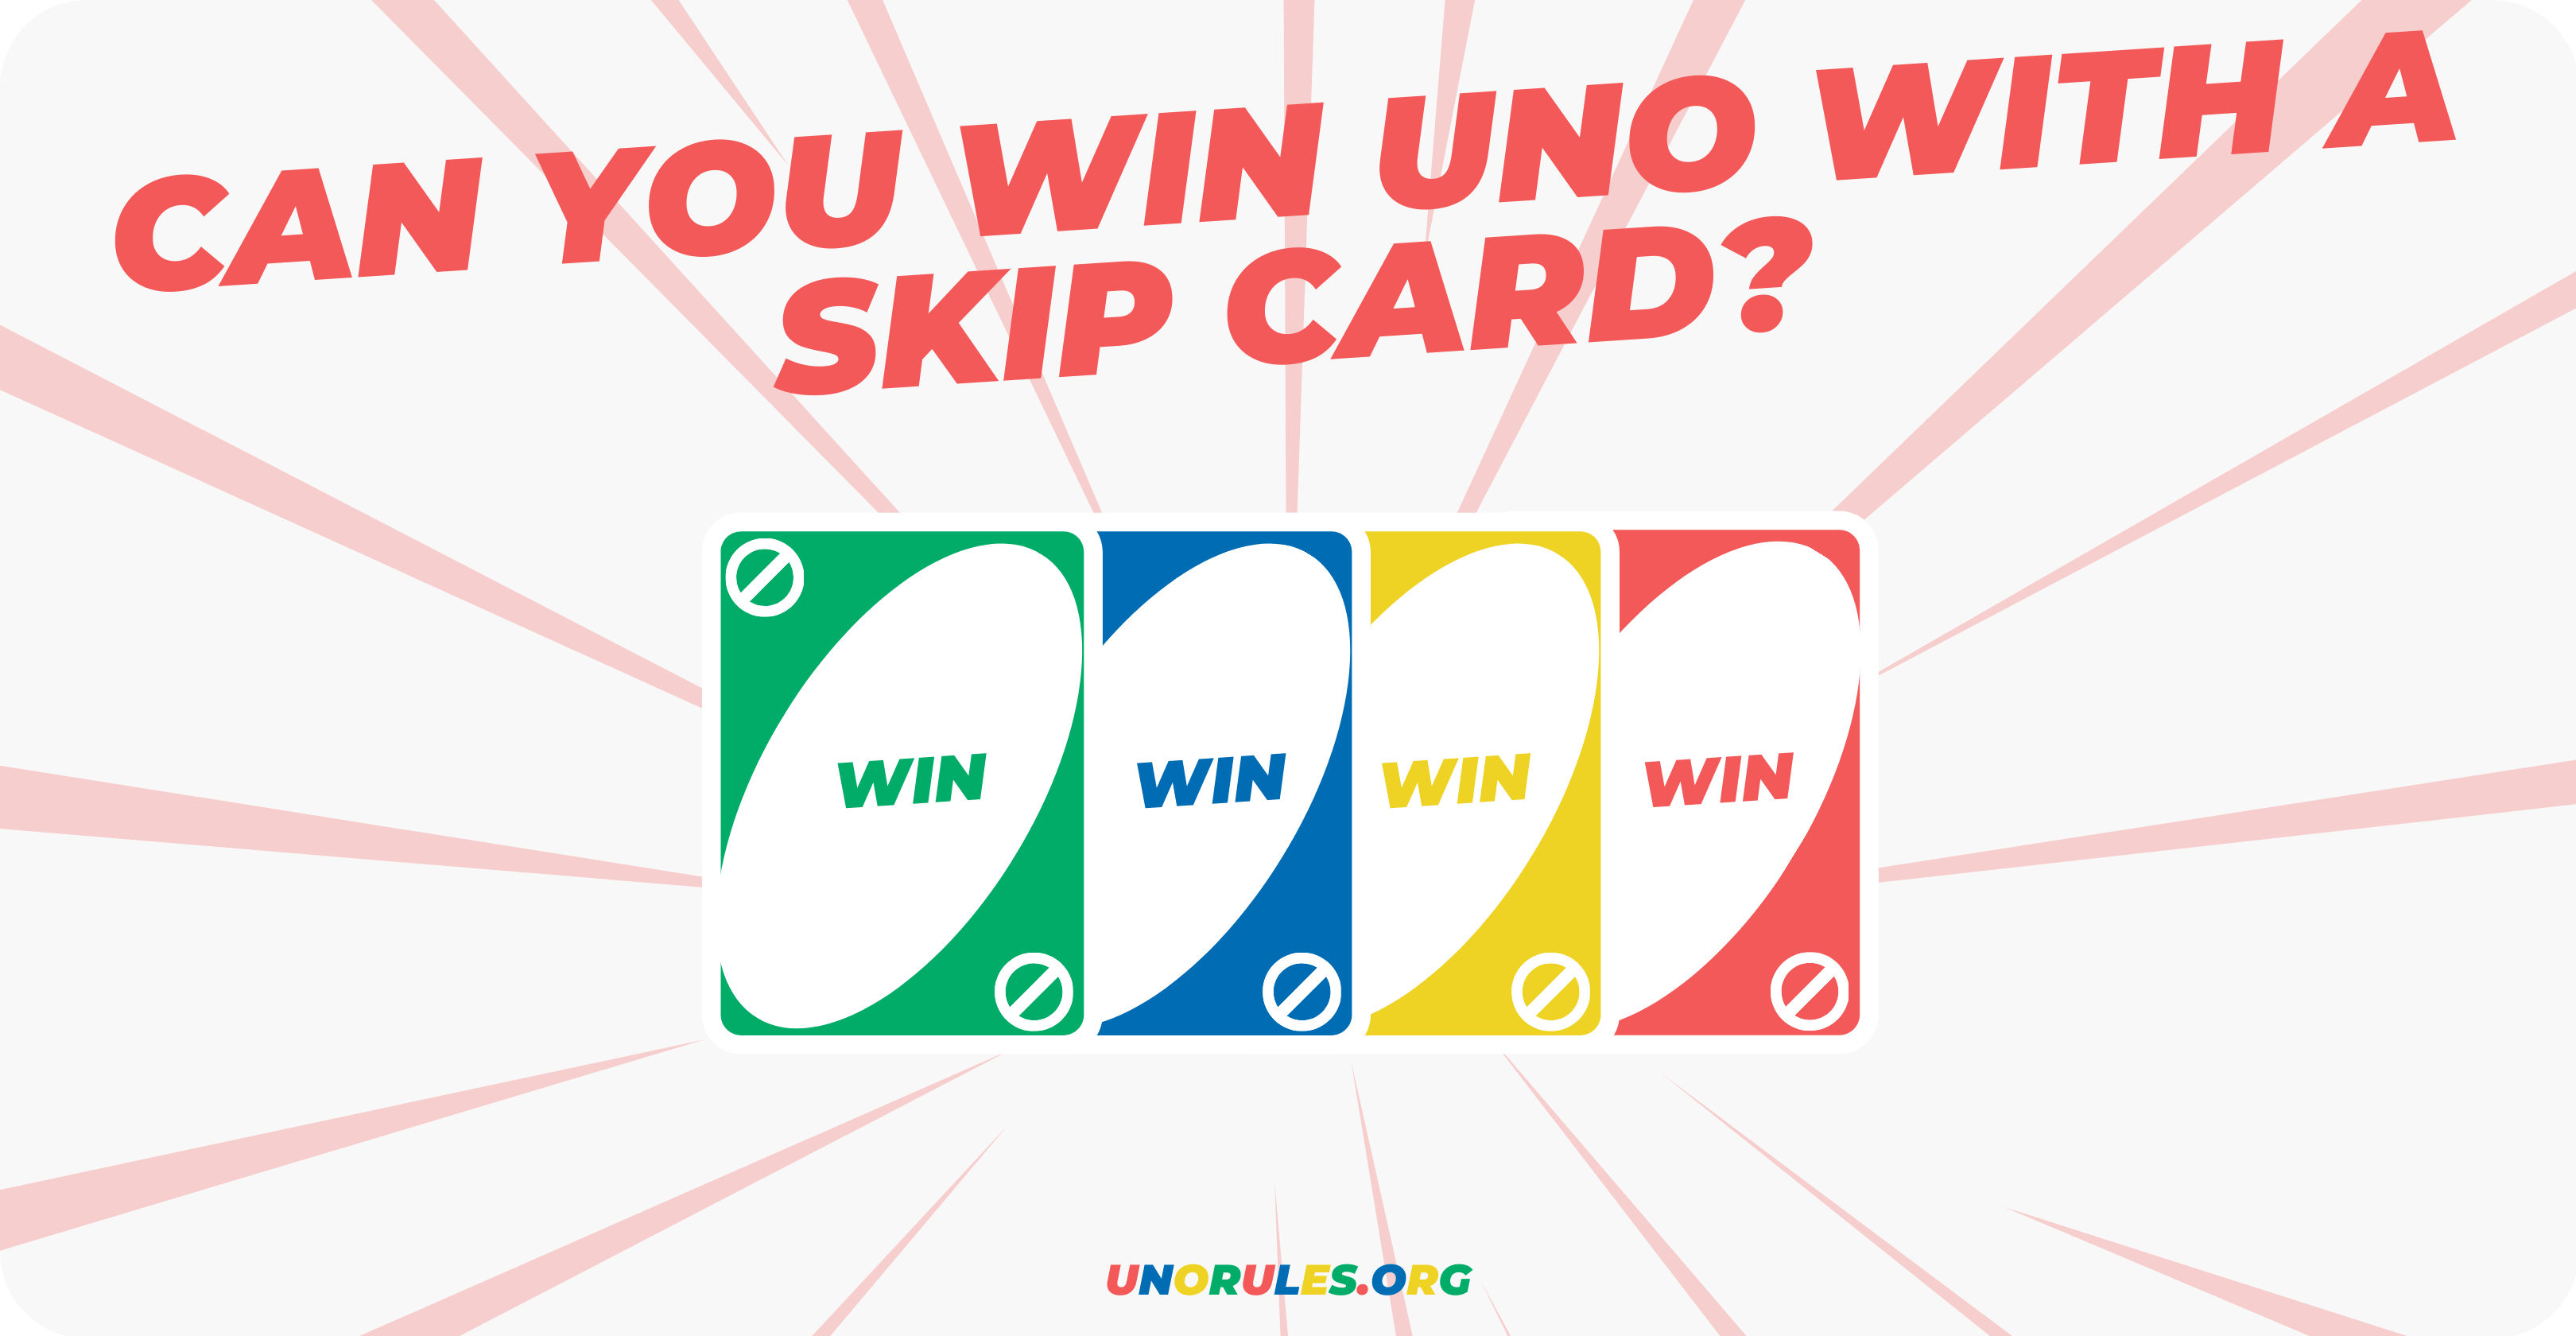 Can you win uno with a skip card